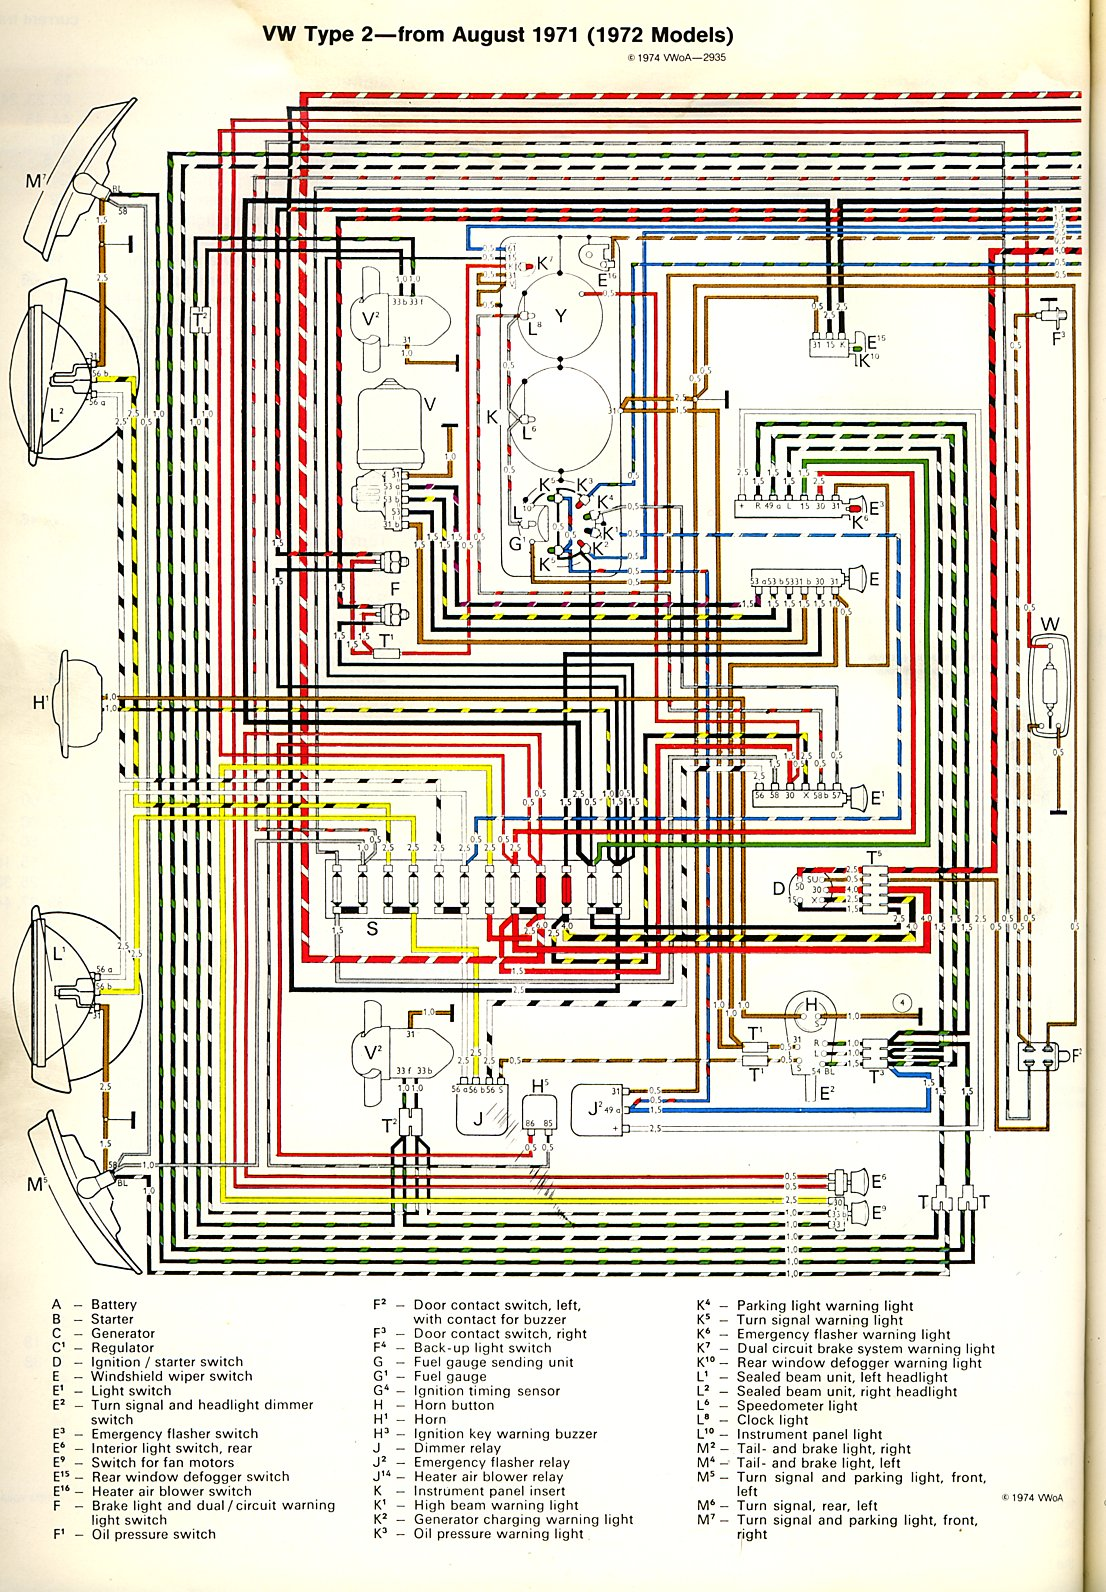 baybus_72a  Vw Alternator Wiring Diagram on 74 beetle wiring diagram, 1974 gmc alternator wiring diagram, 1974 vw engine wiring, 1974 vw thing running boards, 1968 vw beetle engine diagram, 1974 jeep cj5 alternator wiring diagram, vw distributor diagram, 1974 vw beetle, toyota alternator diagram, 2004 porsche cayenne fuse box diagram, vw beetle wiring diagram, 1974 vw alternator regulator, mopar ballast resistor wiring diagram, 1974 vw engine diagram, super beetle engine diagram, vw starter wiring diagram, 1974 dodge alternator wiring diagram, 1968 vw bug wiring diagram, 1974 vw wiring diagrams wires, 1974 jeep starter solenoid wiring diagram,